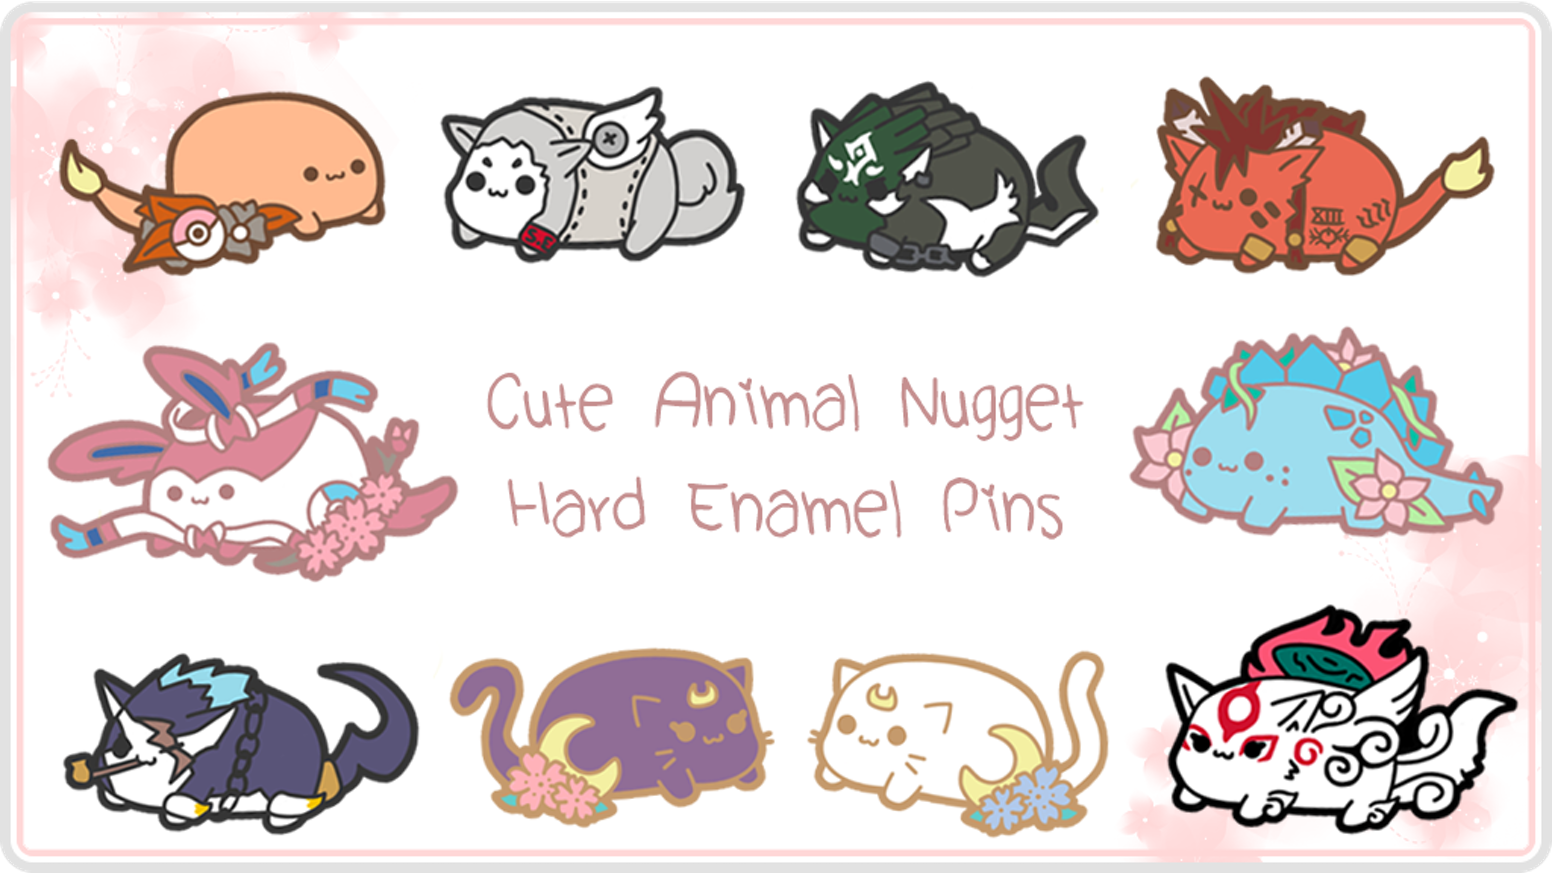 Little pins inspired by gaming, anime and ...dinosaurs! :D